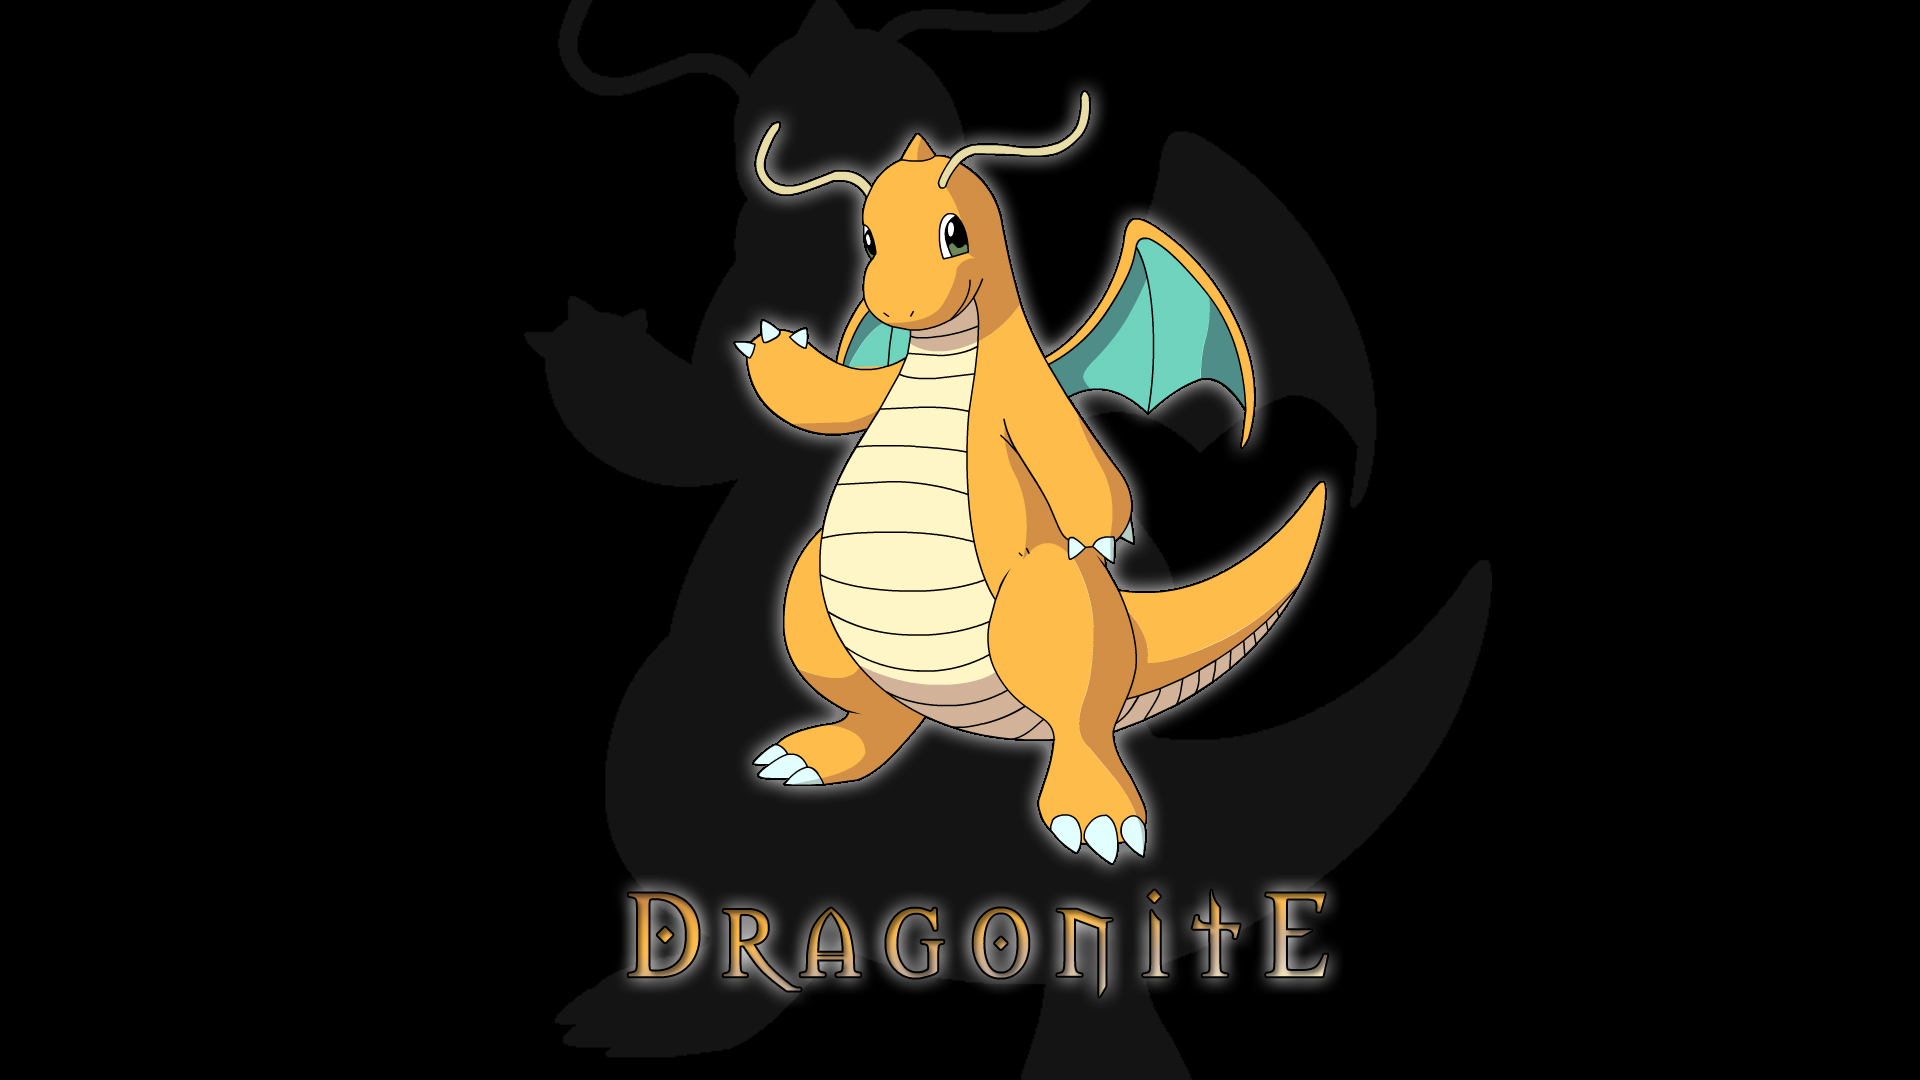 Cute Dragonite Wallpaper Hd Pokemon Wallpaper Part 2 Let S Talk About